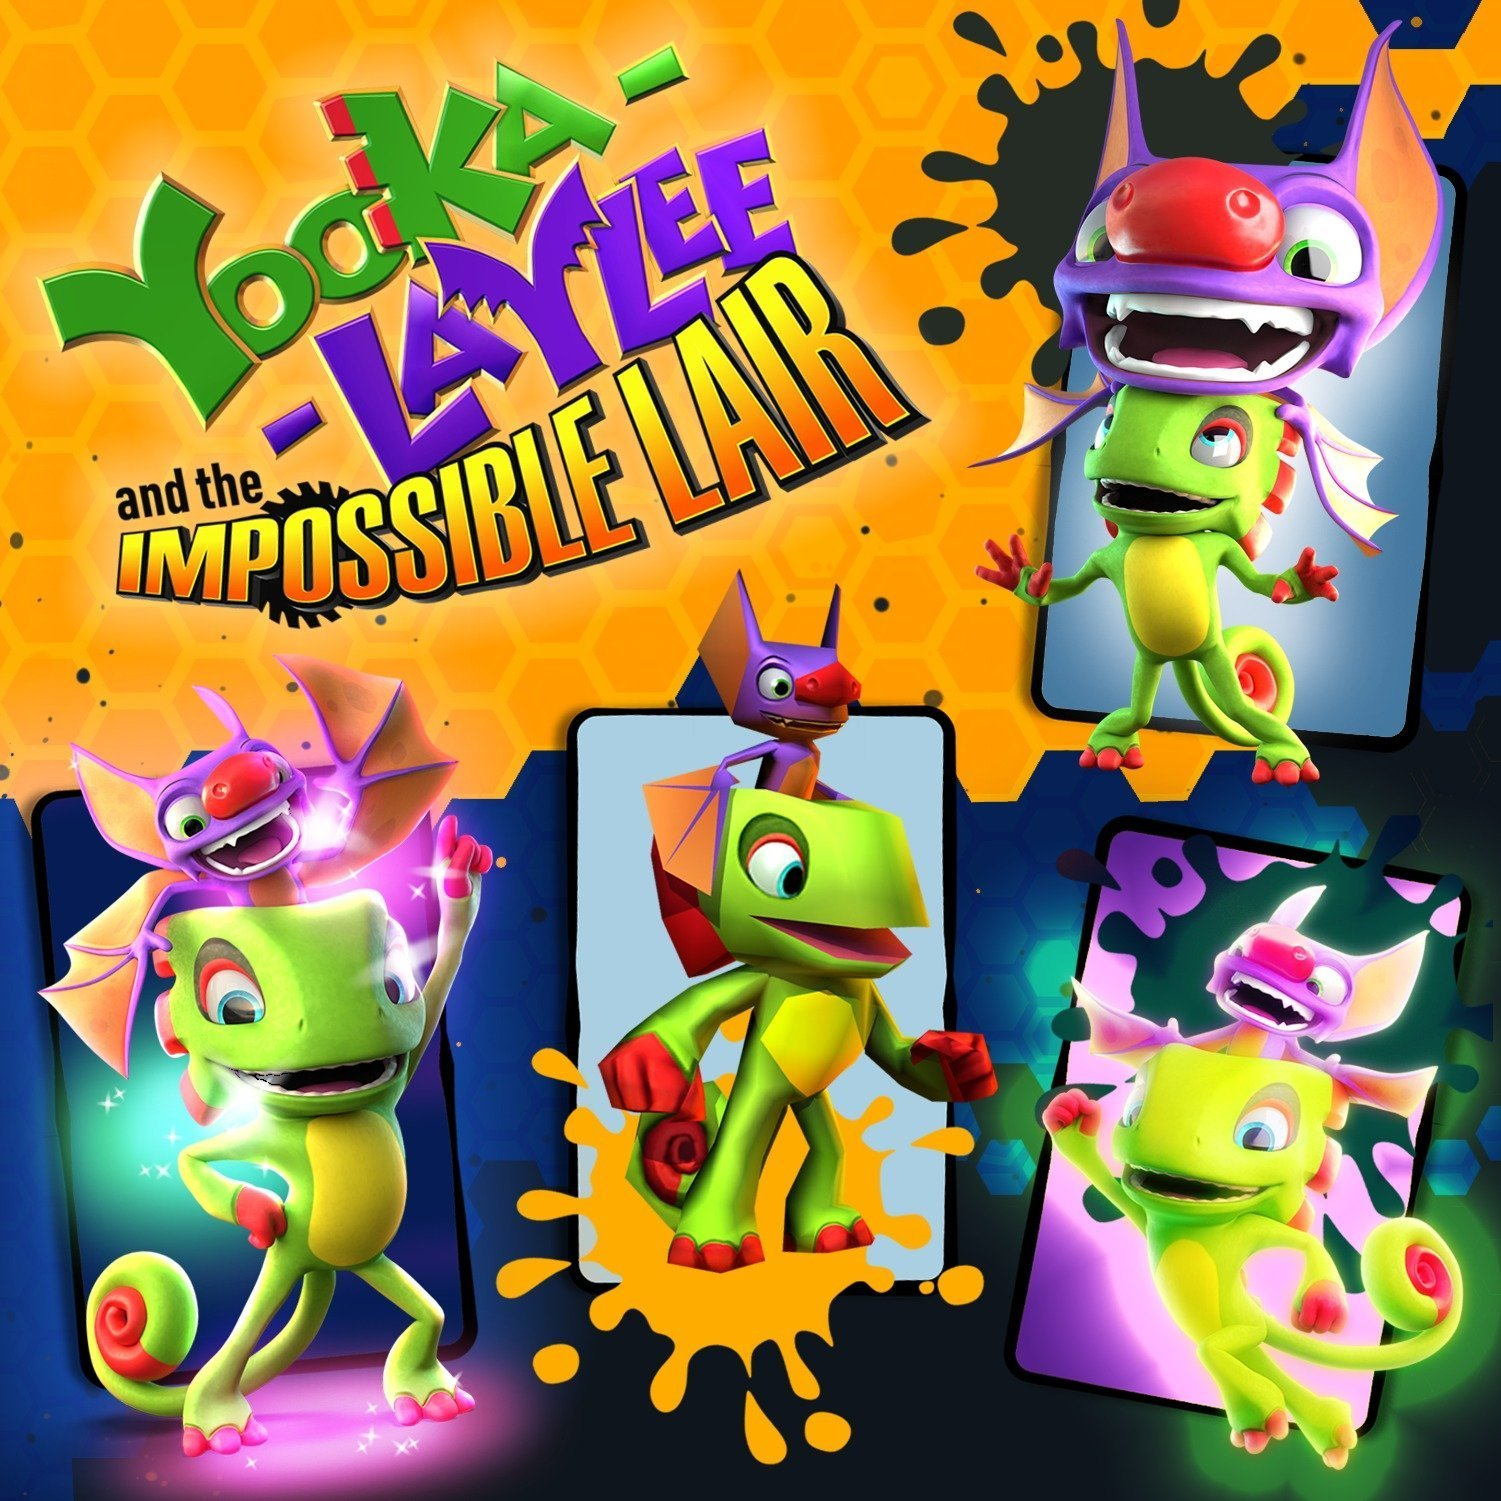 Yooka Laylee and the Impossible Lair preorder